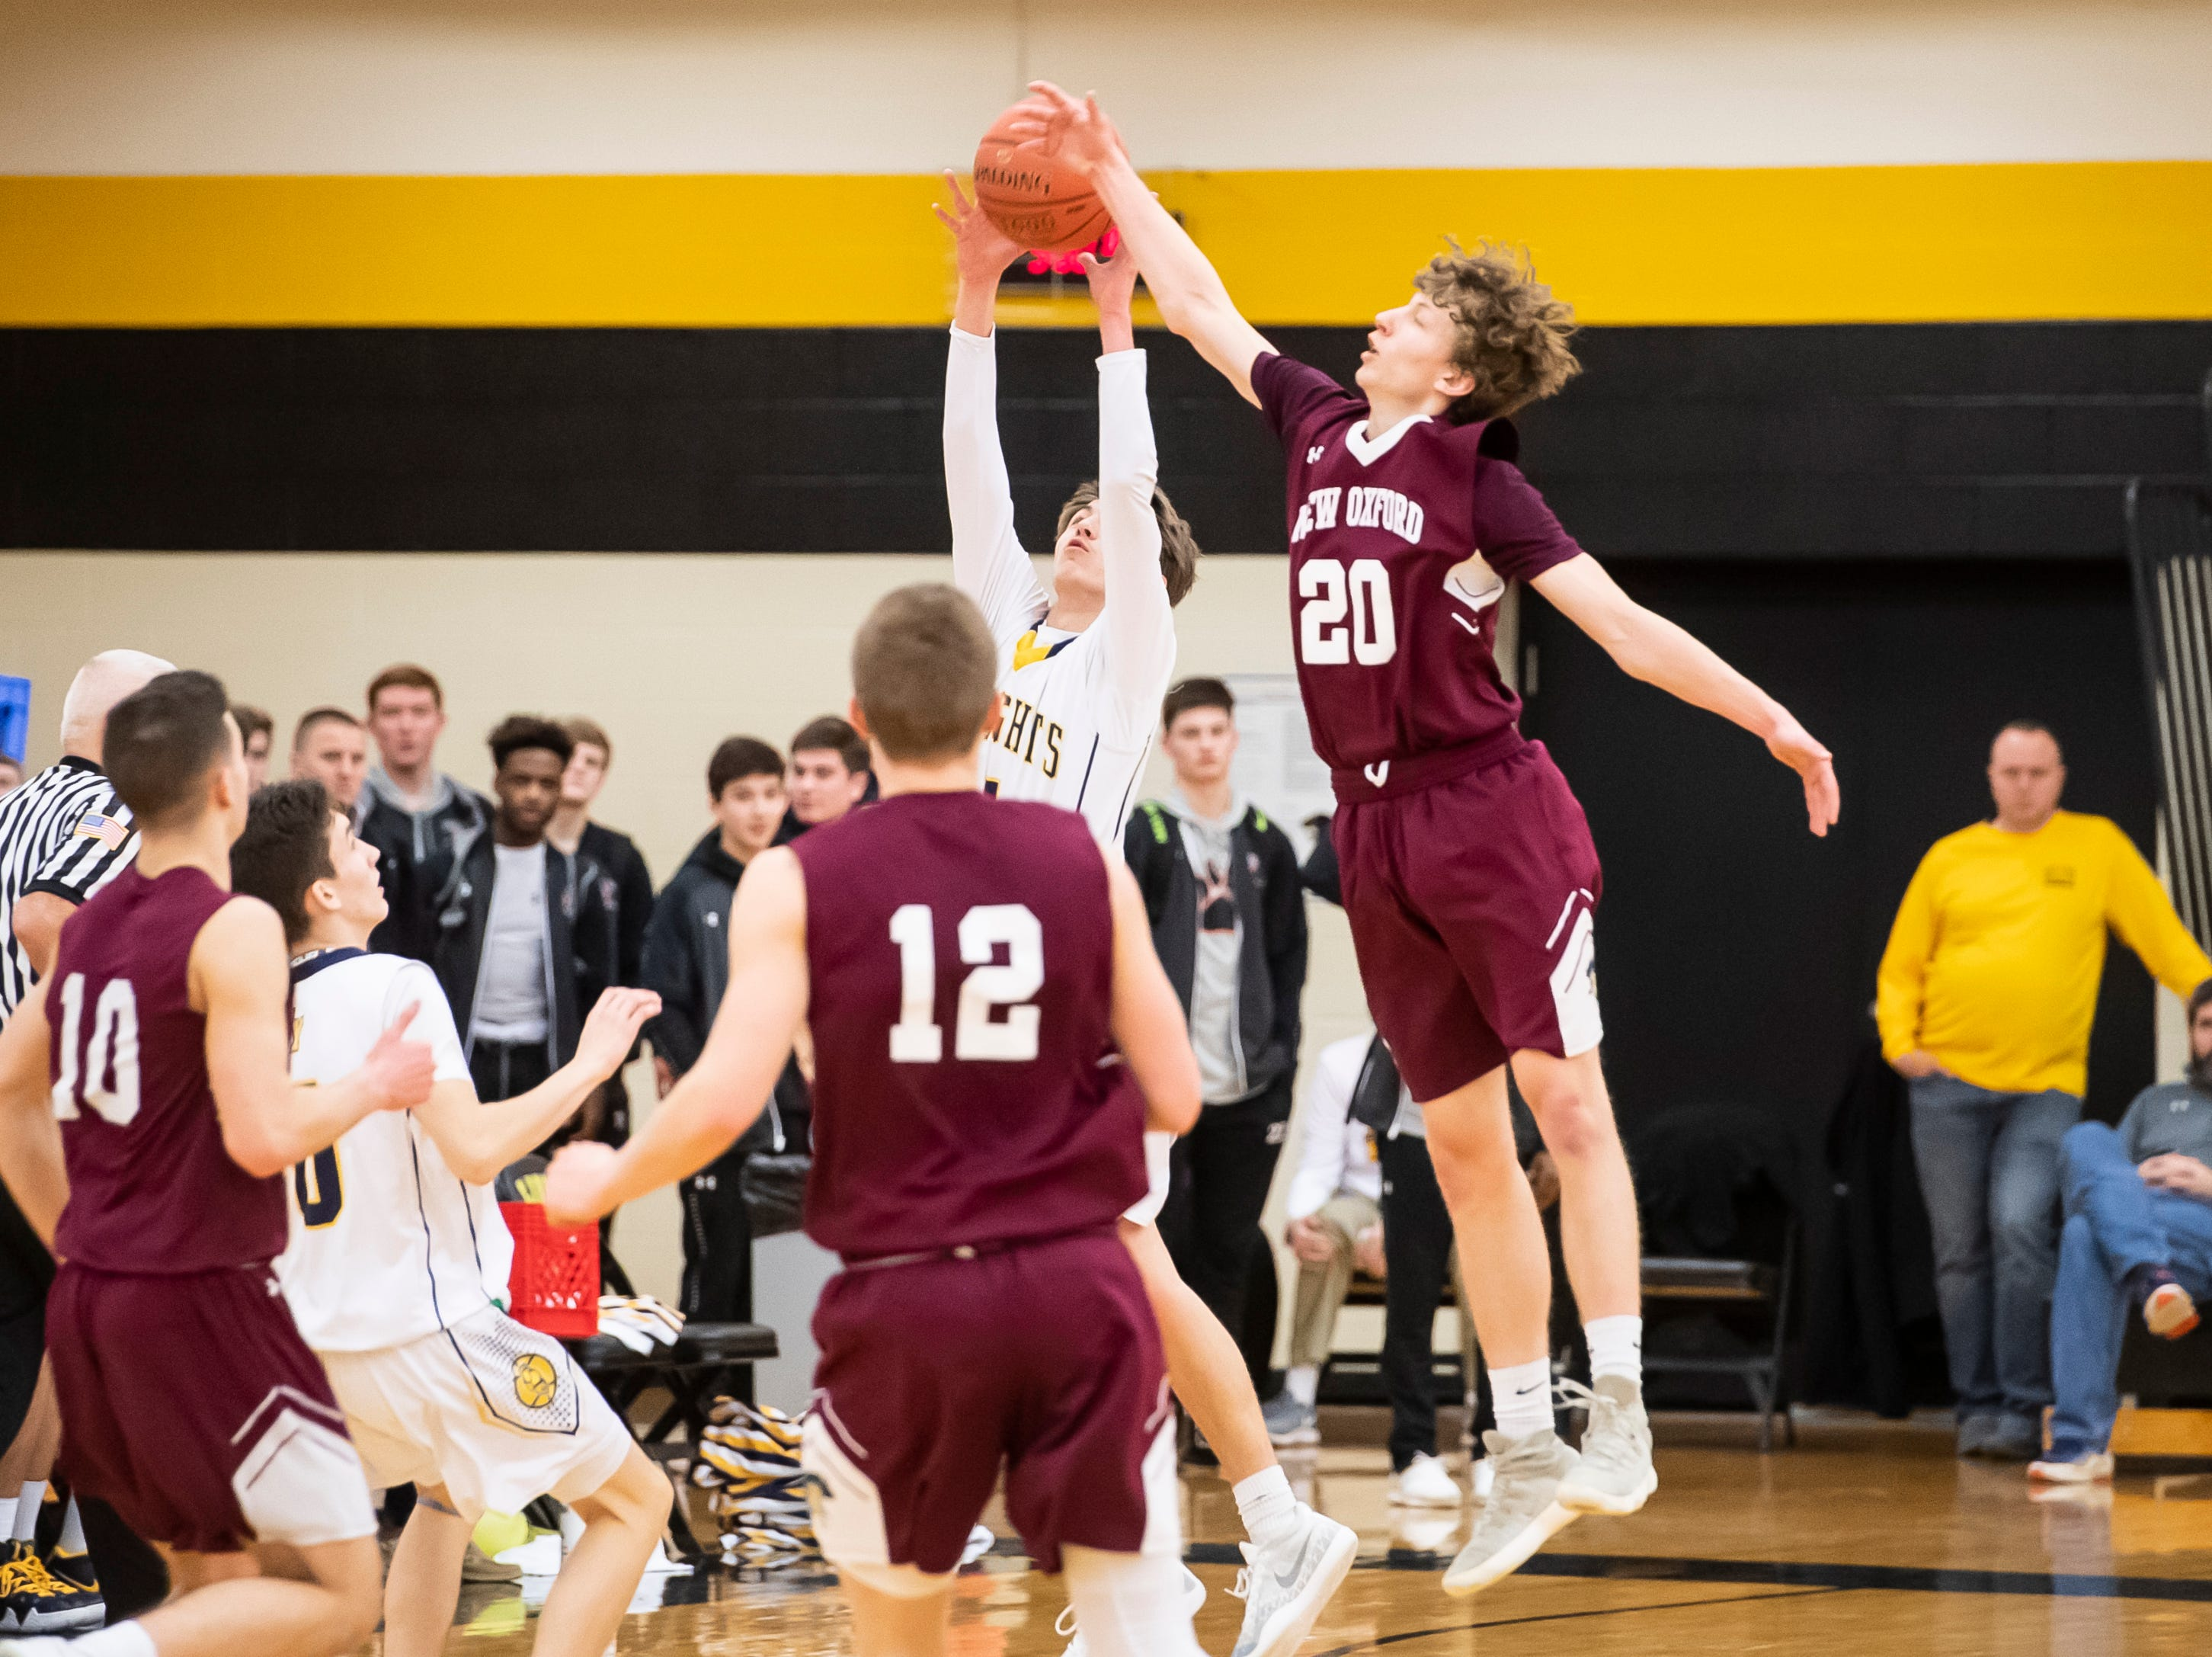 Eastern York's Trevor Seitz grabs a high pass late in the fourth quarter of play against New Oxford in a YAIAA quarterfinal game at Red Lion High School Saturday, February 9, 2019.